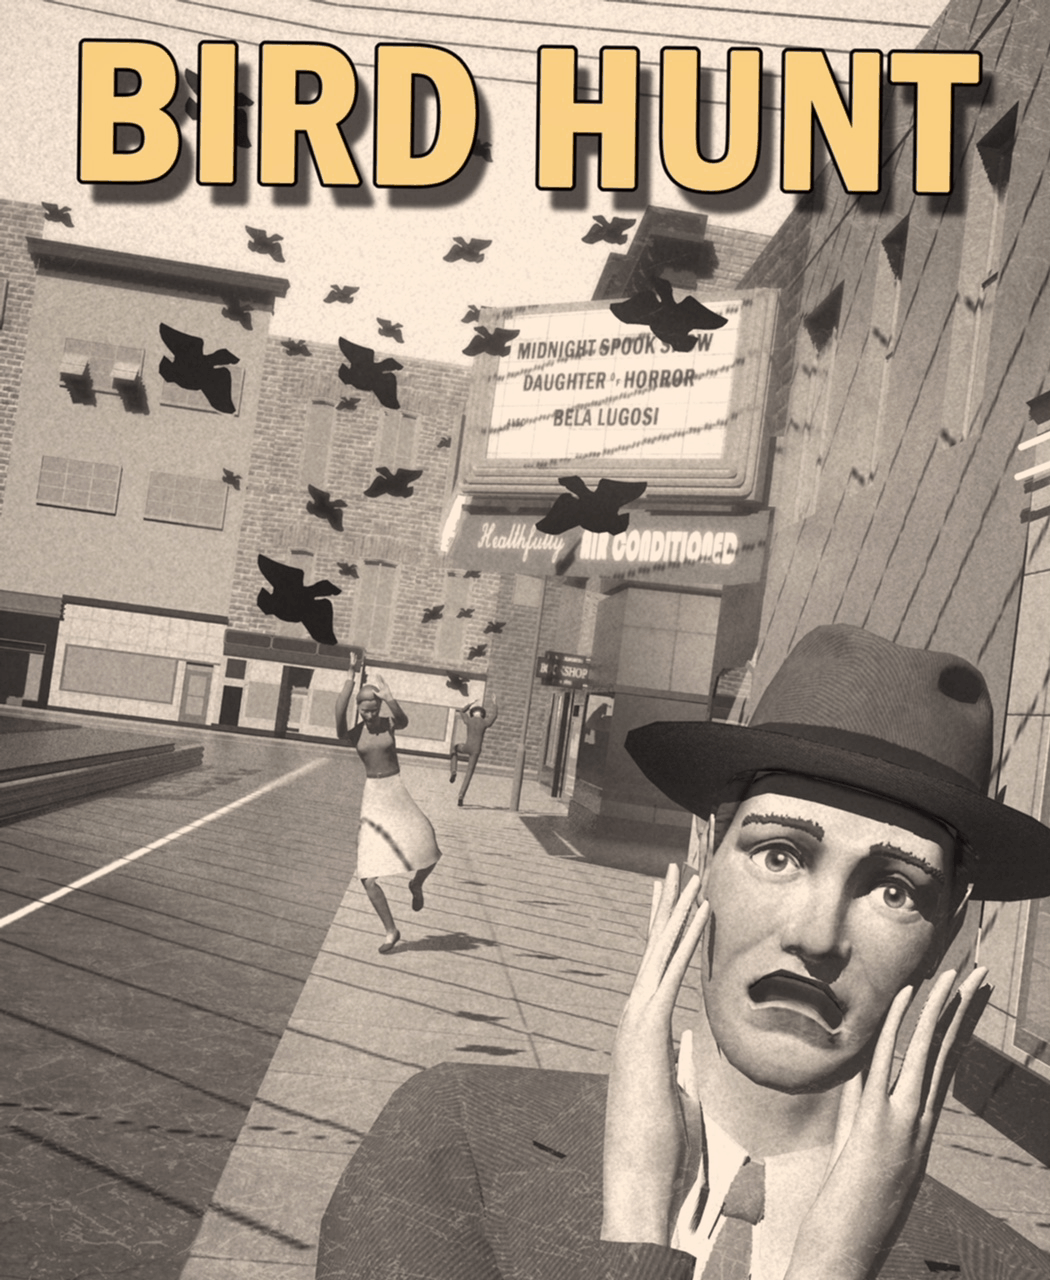 Traffic Cop VR Bird Hunt